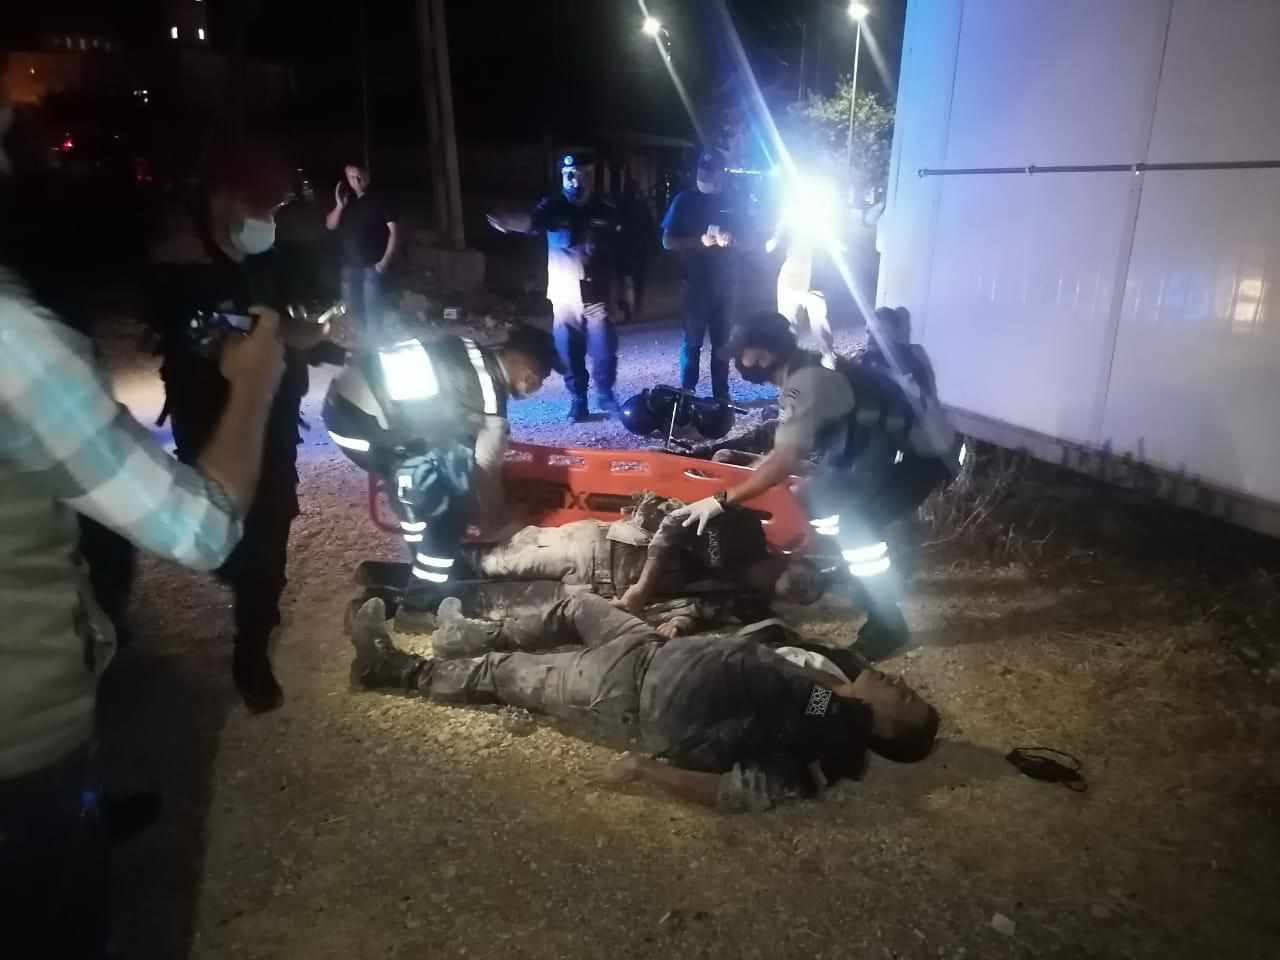 Jordanian security personnel injured in an armed attack in the Malha area of Amman are treated by an ambulance team on Saturday. (Petra News Agency photo via Twitter)